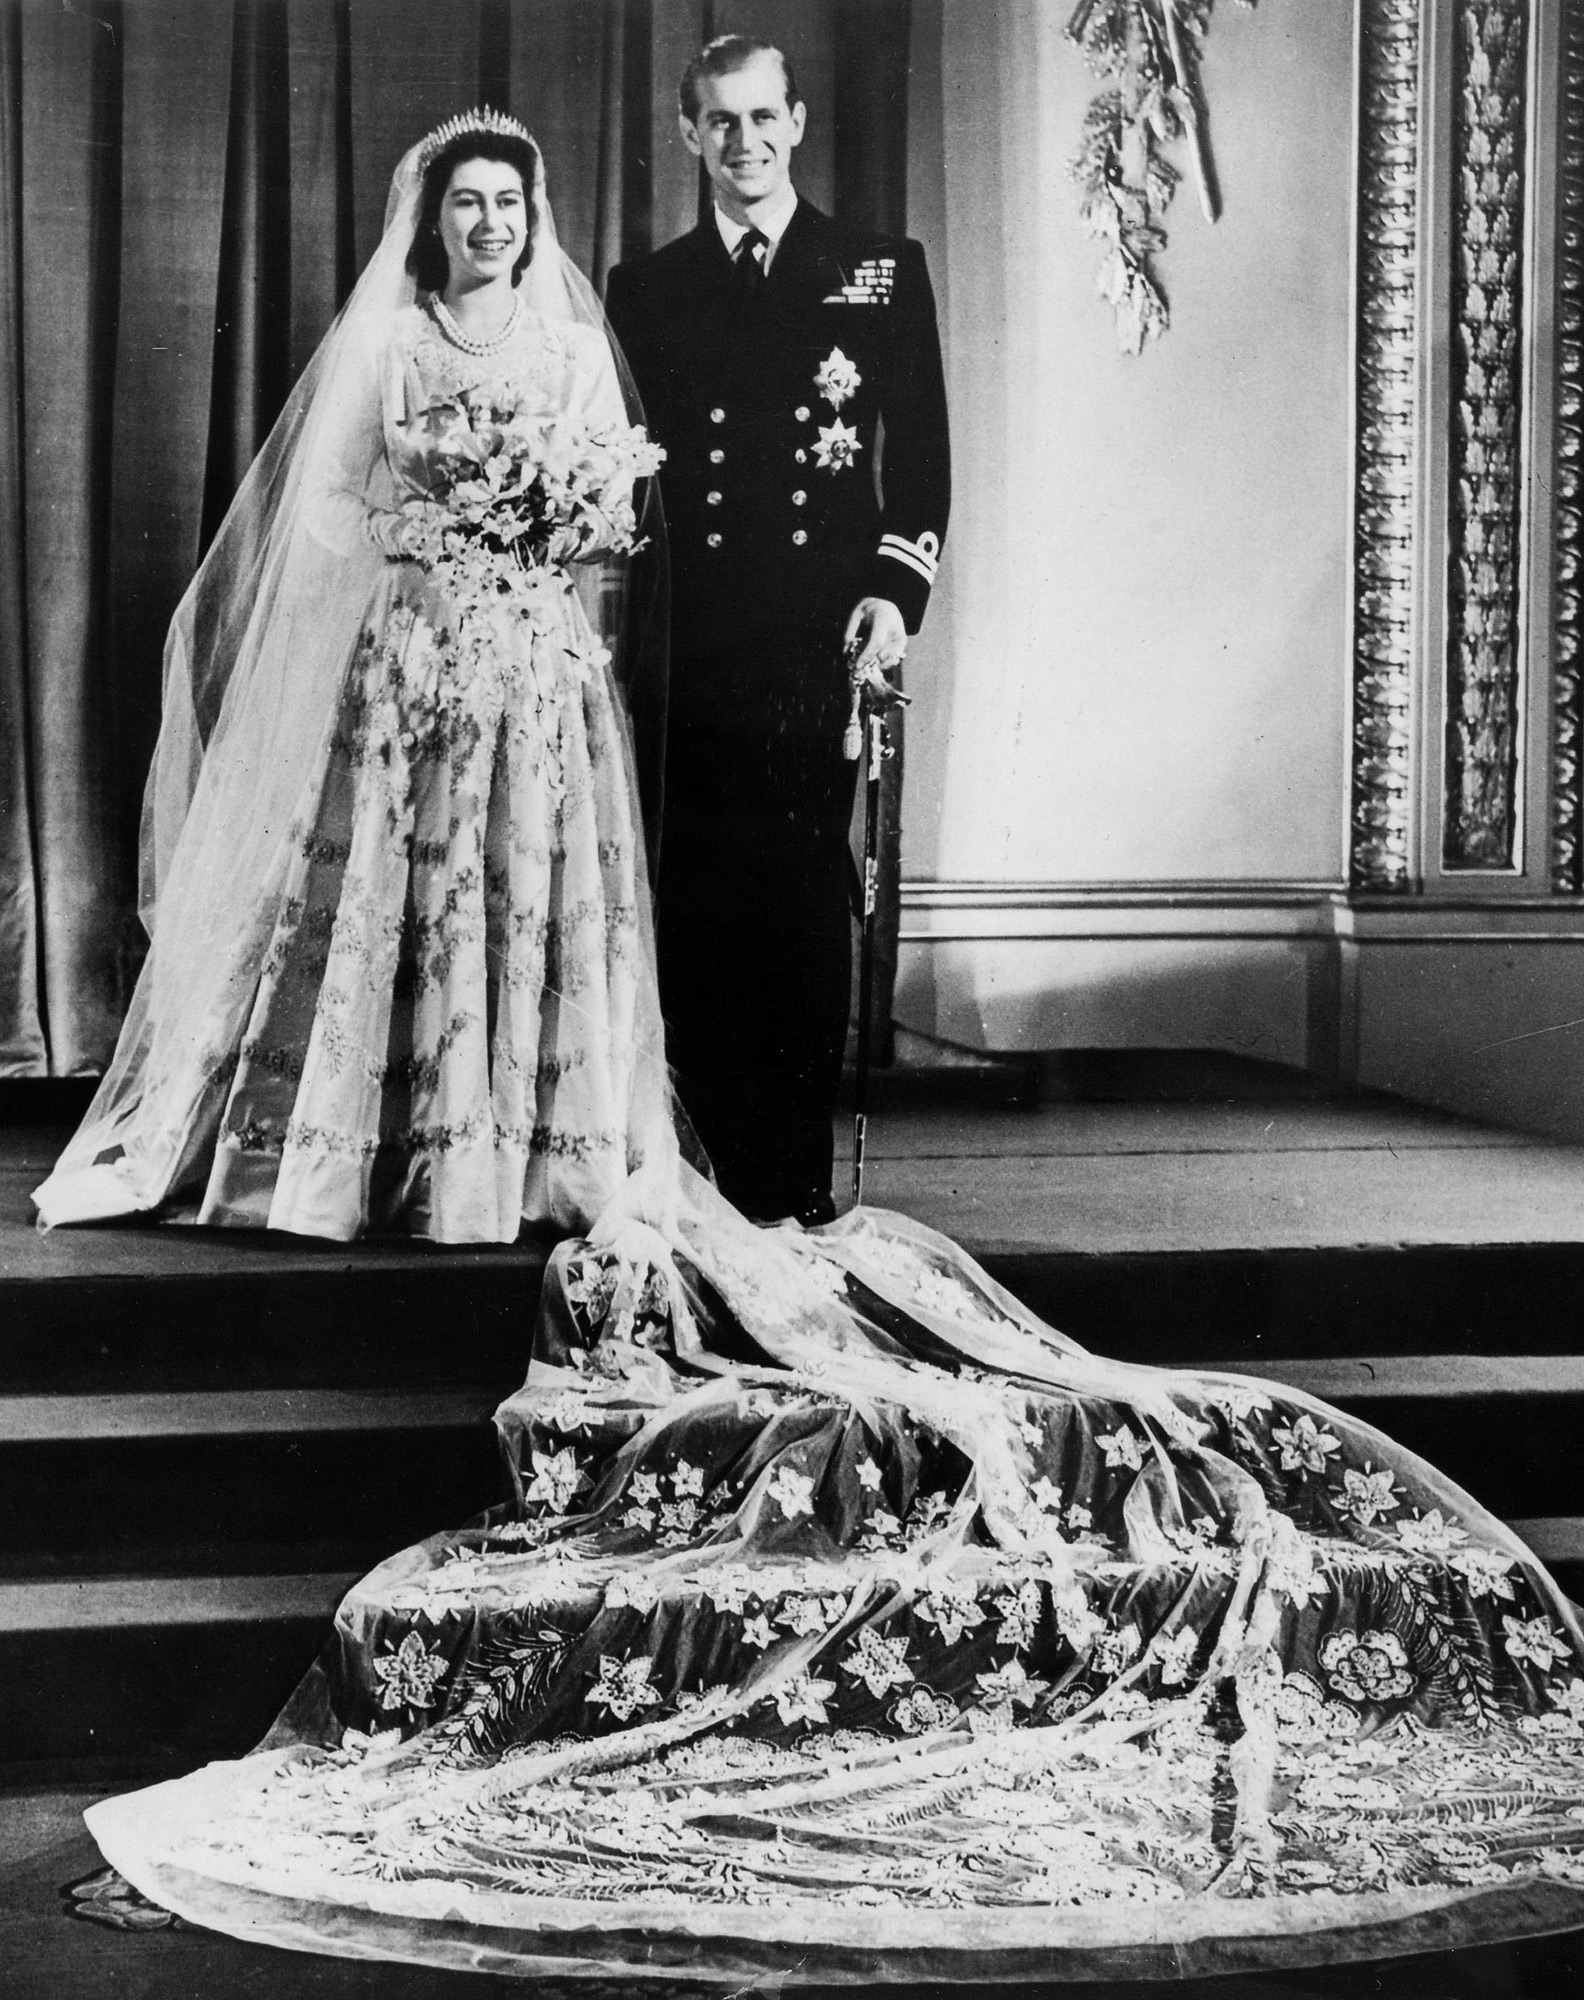 British Royalty, pic: 20th November 1947, Buckingham Palace, London, The wedding of Princess Elizabeth and the Duke of Edinburgh showing the couple at the Palace after their wedding at Westminster Abbey (Photo by Popperfoto/Getty Images)